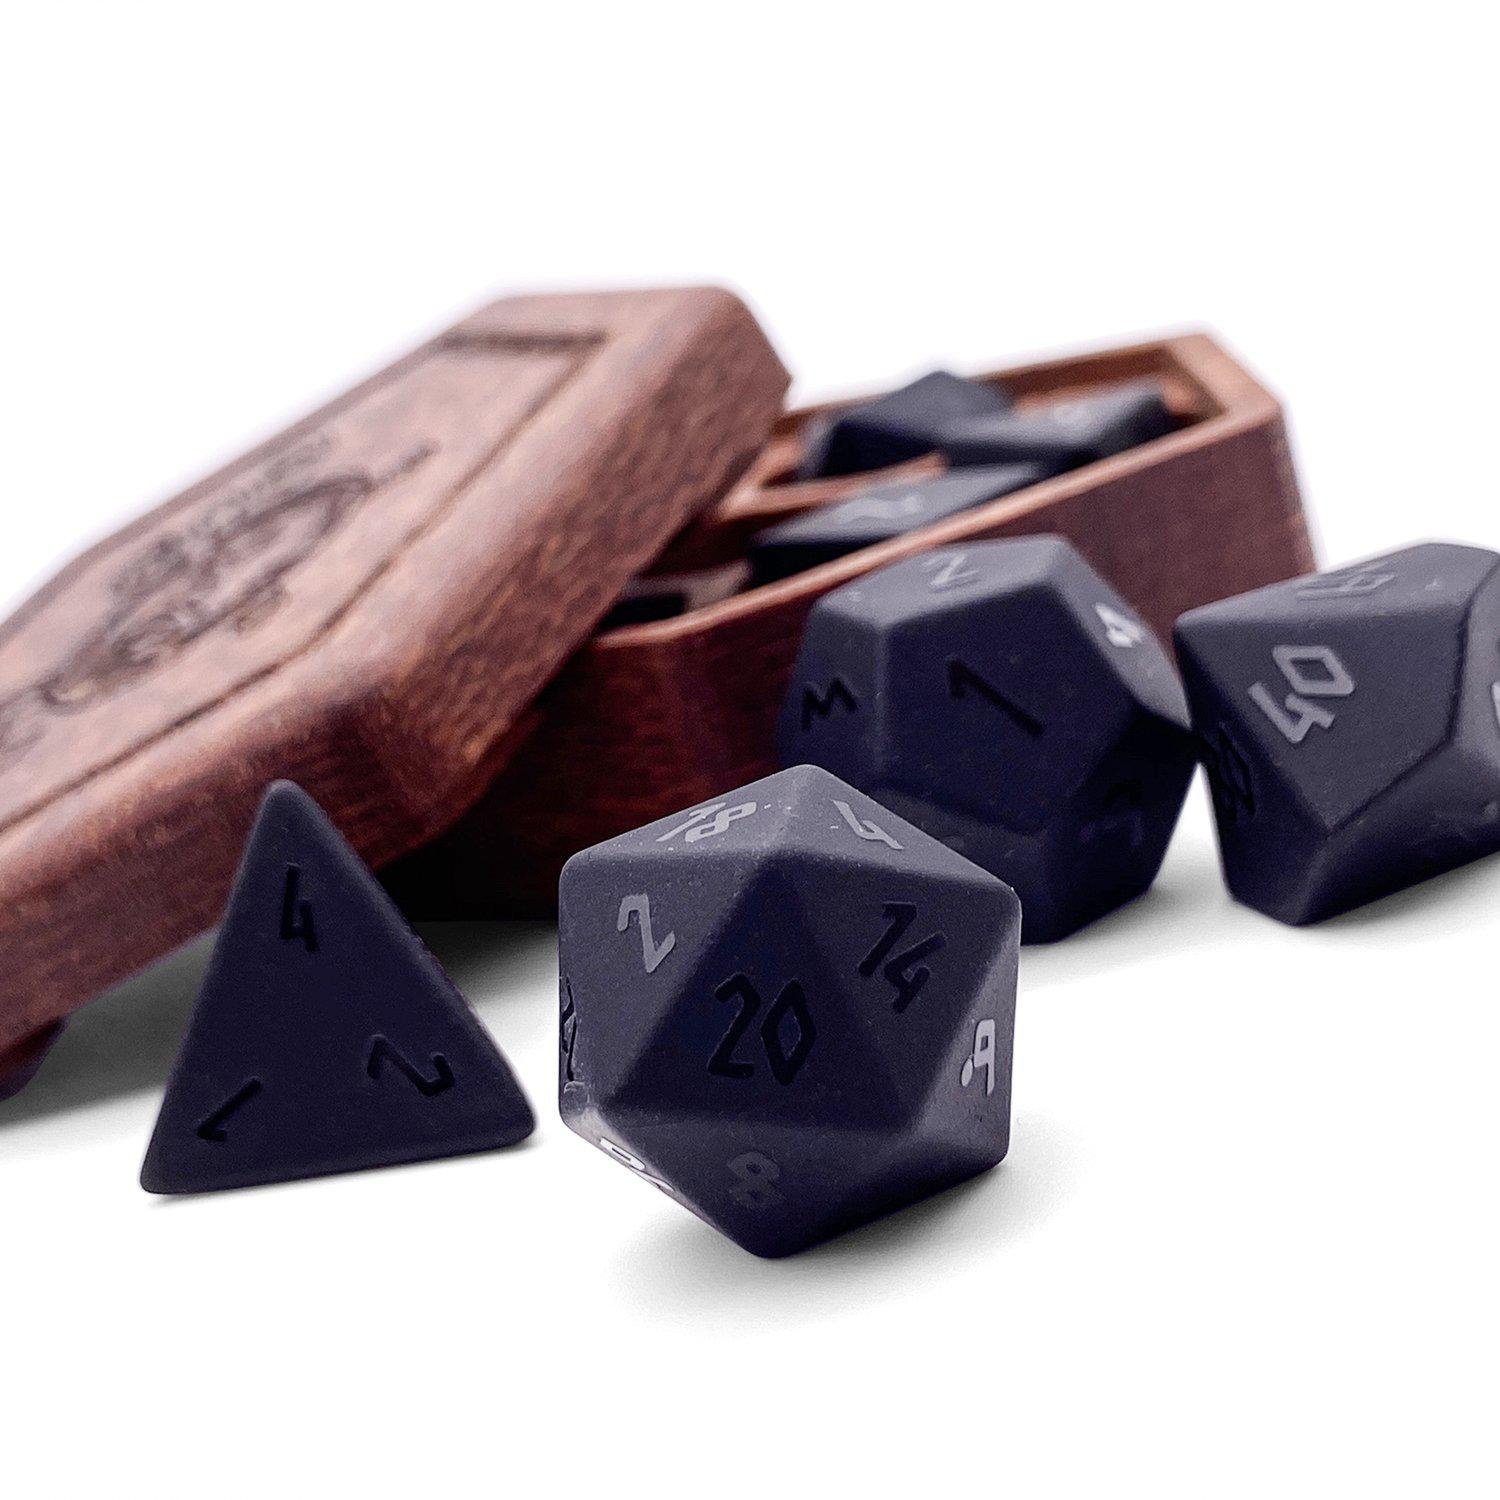 Raised Obsidian Gemstone 7 piece RPG Dice Set